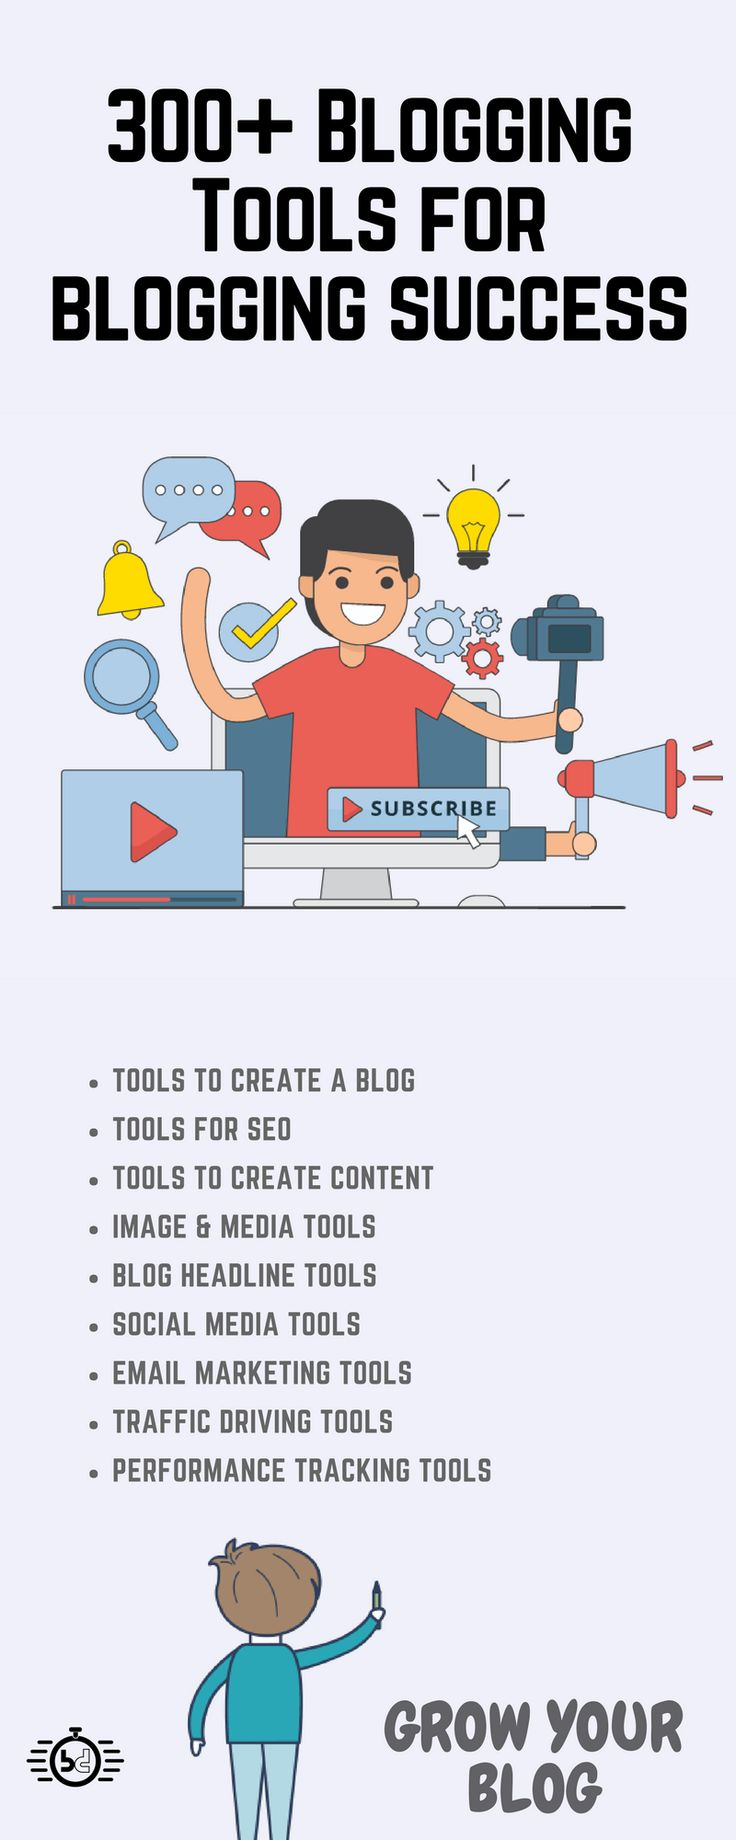 Start a new blog, grow your blog. This article is about over 300 best blogging tools that will help you to create a successful blog and drive a lot of traffic